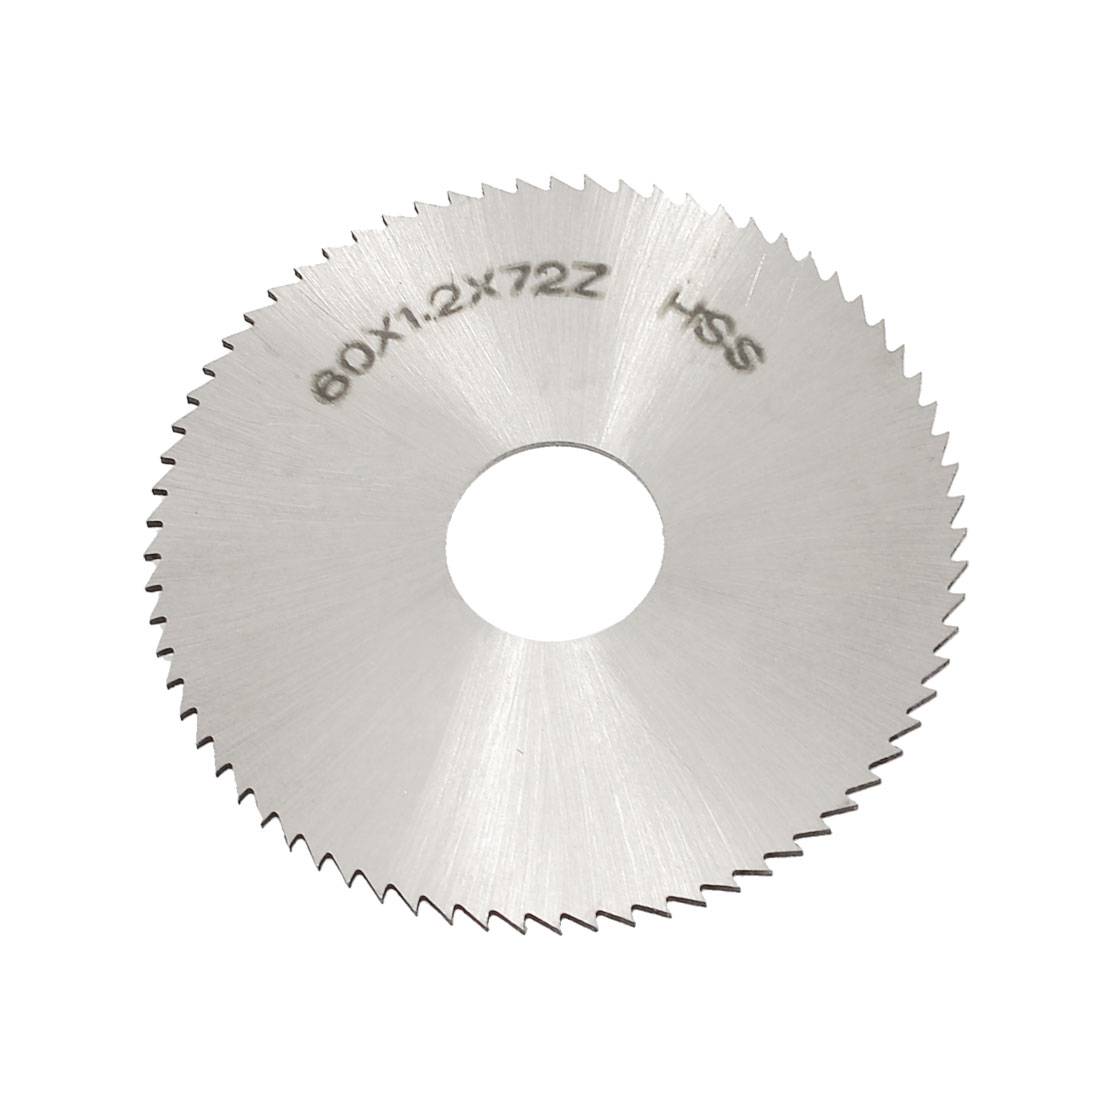 60mm OD 1.2mm Thickness 72T HSS Circular Slitting Saw